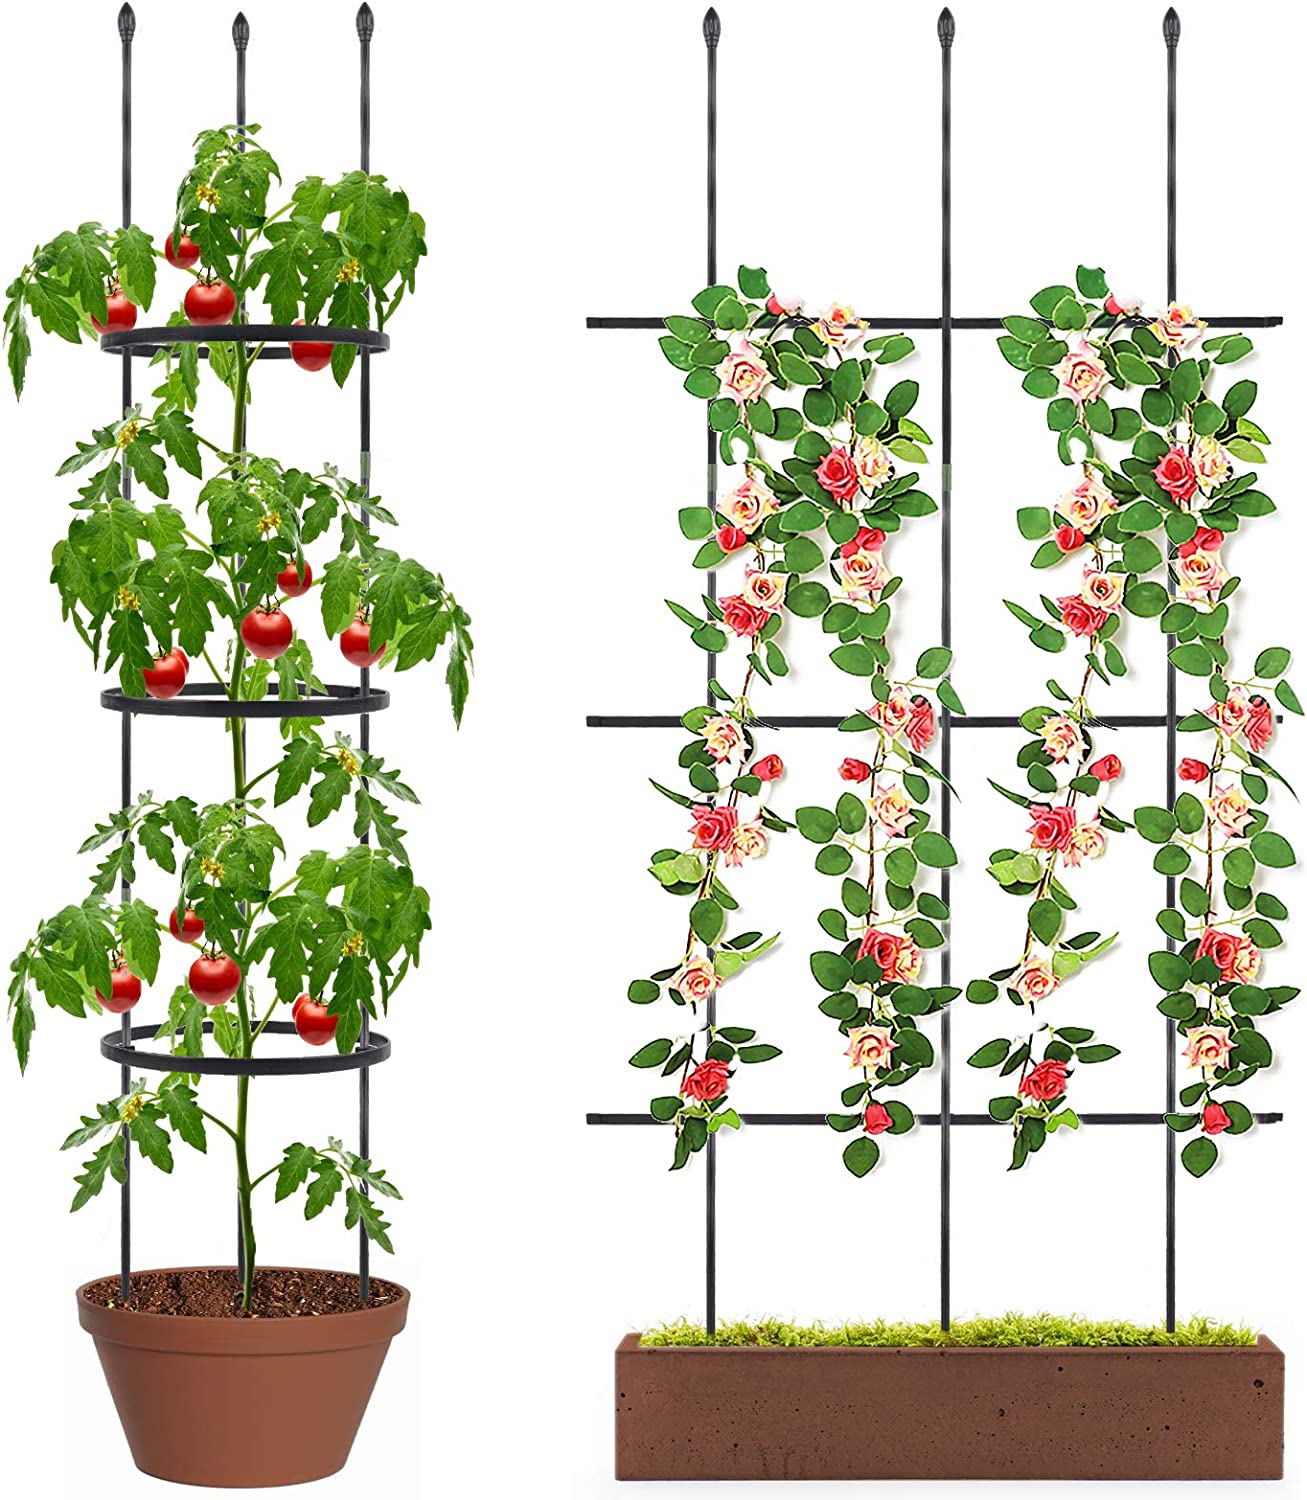 deaunbr Tomato Cages and Supports, 2Pcs Plant Cage Two Usages Tomatos Stake Garden Trellis for Plants Indoor & Outdoor Plants, Climbing Plant, Vegetables, Fruits & Flowers, Pots